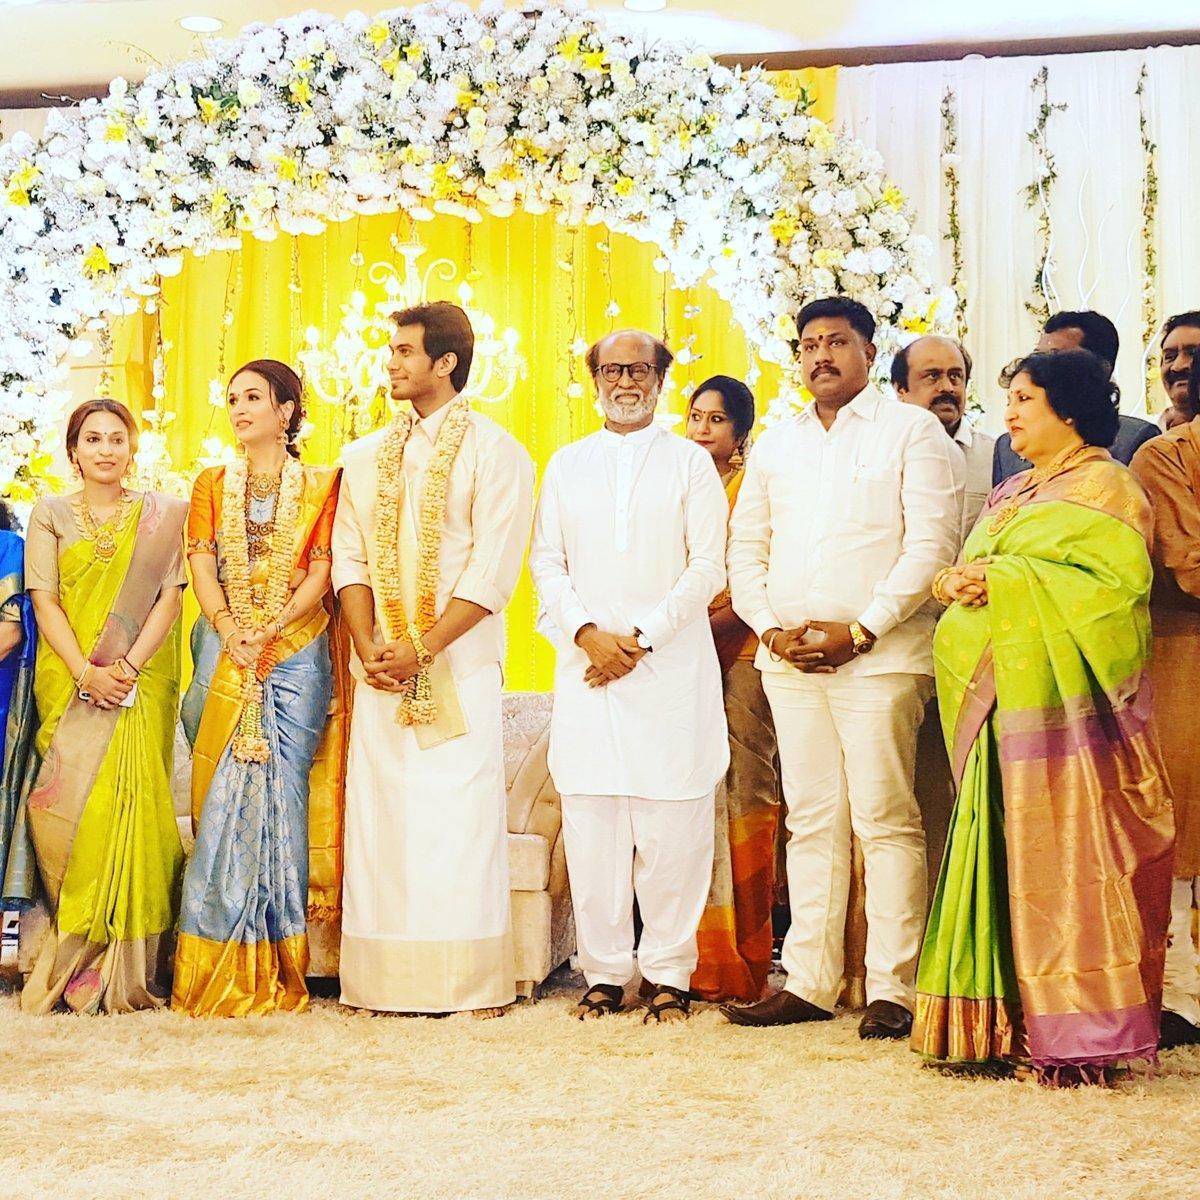 The pre-wedding reception was held at the Sri Raghavendra Kalyana Mandapam, owned by Rajinikanth, on Friday – the couple will tie the knot at a gala wedding ceremony on Monday morning at a five-star hotel in the city.